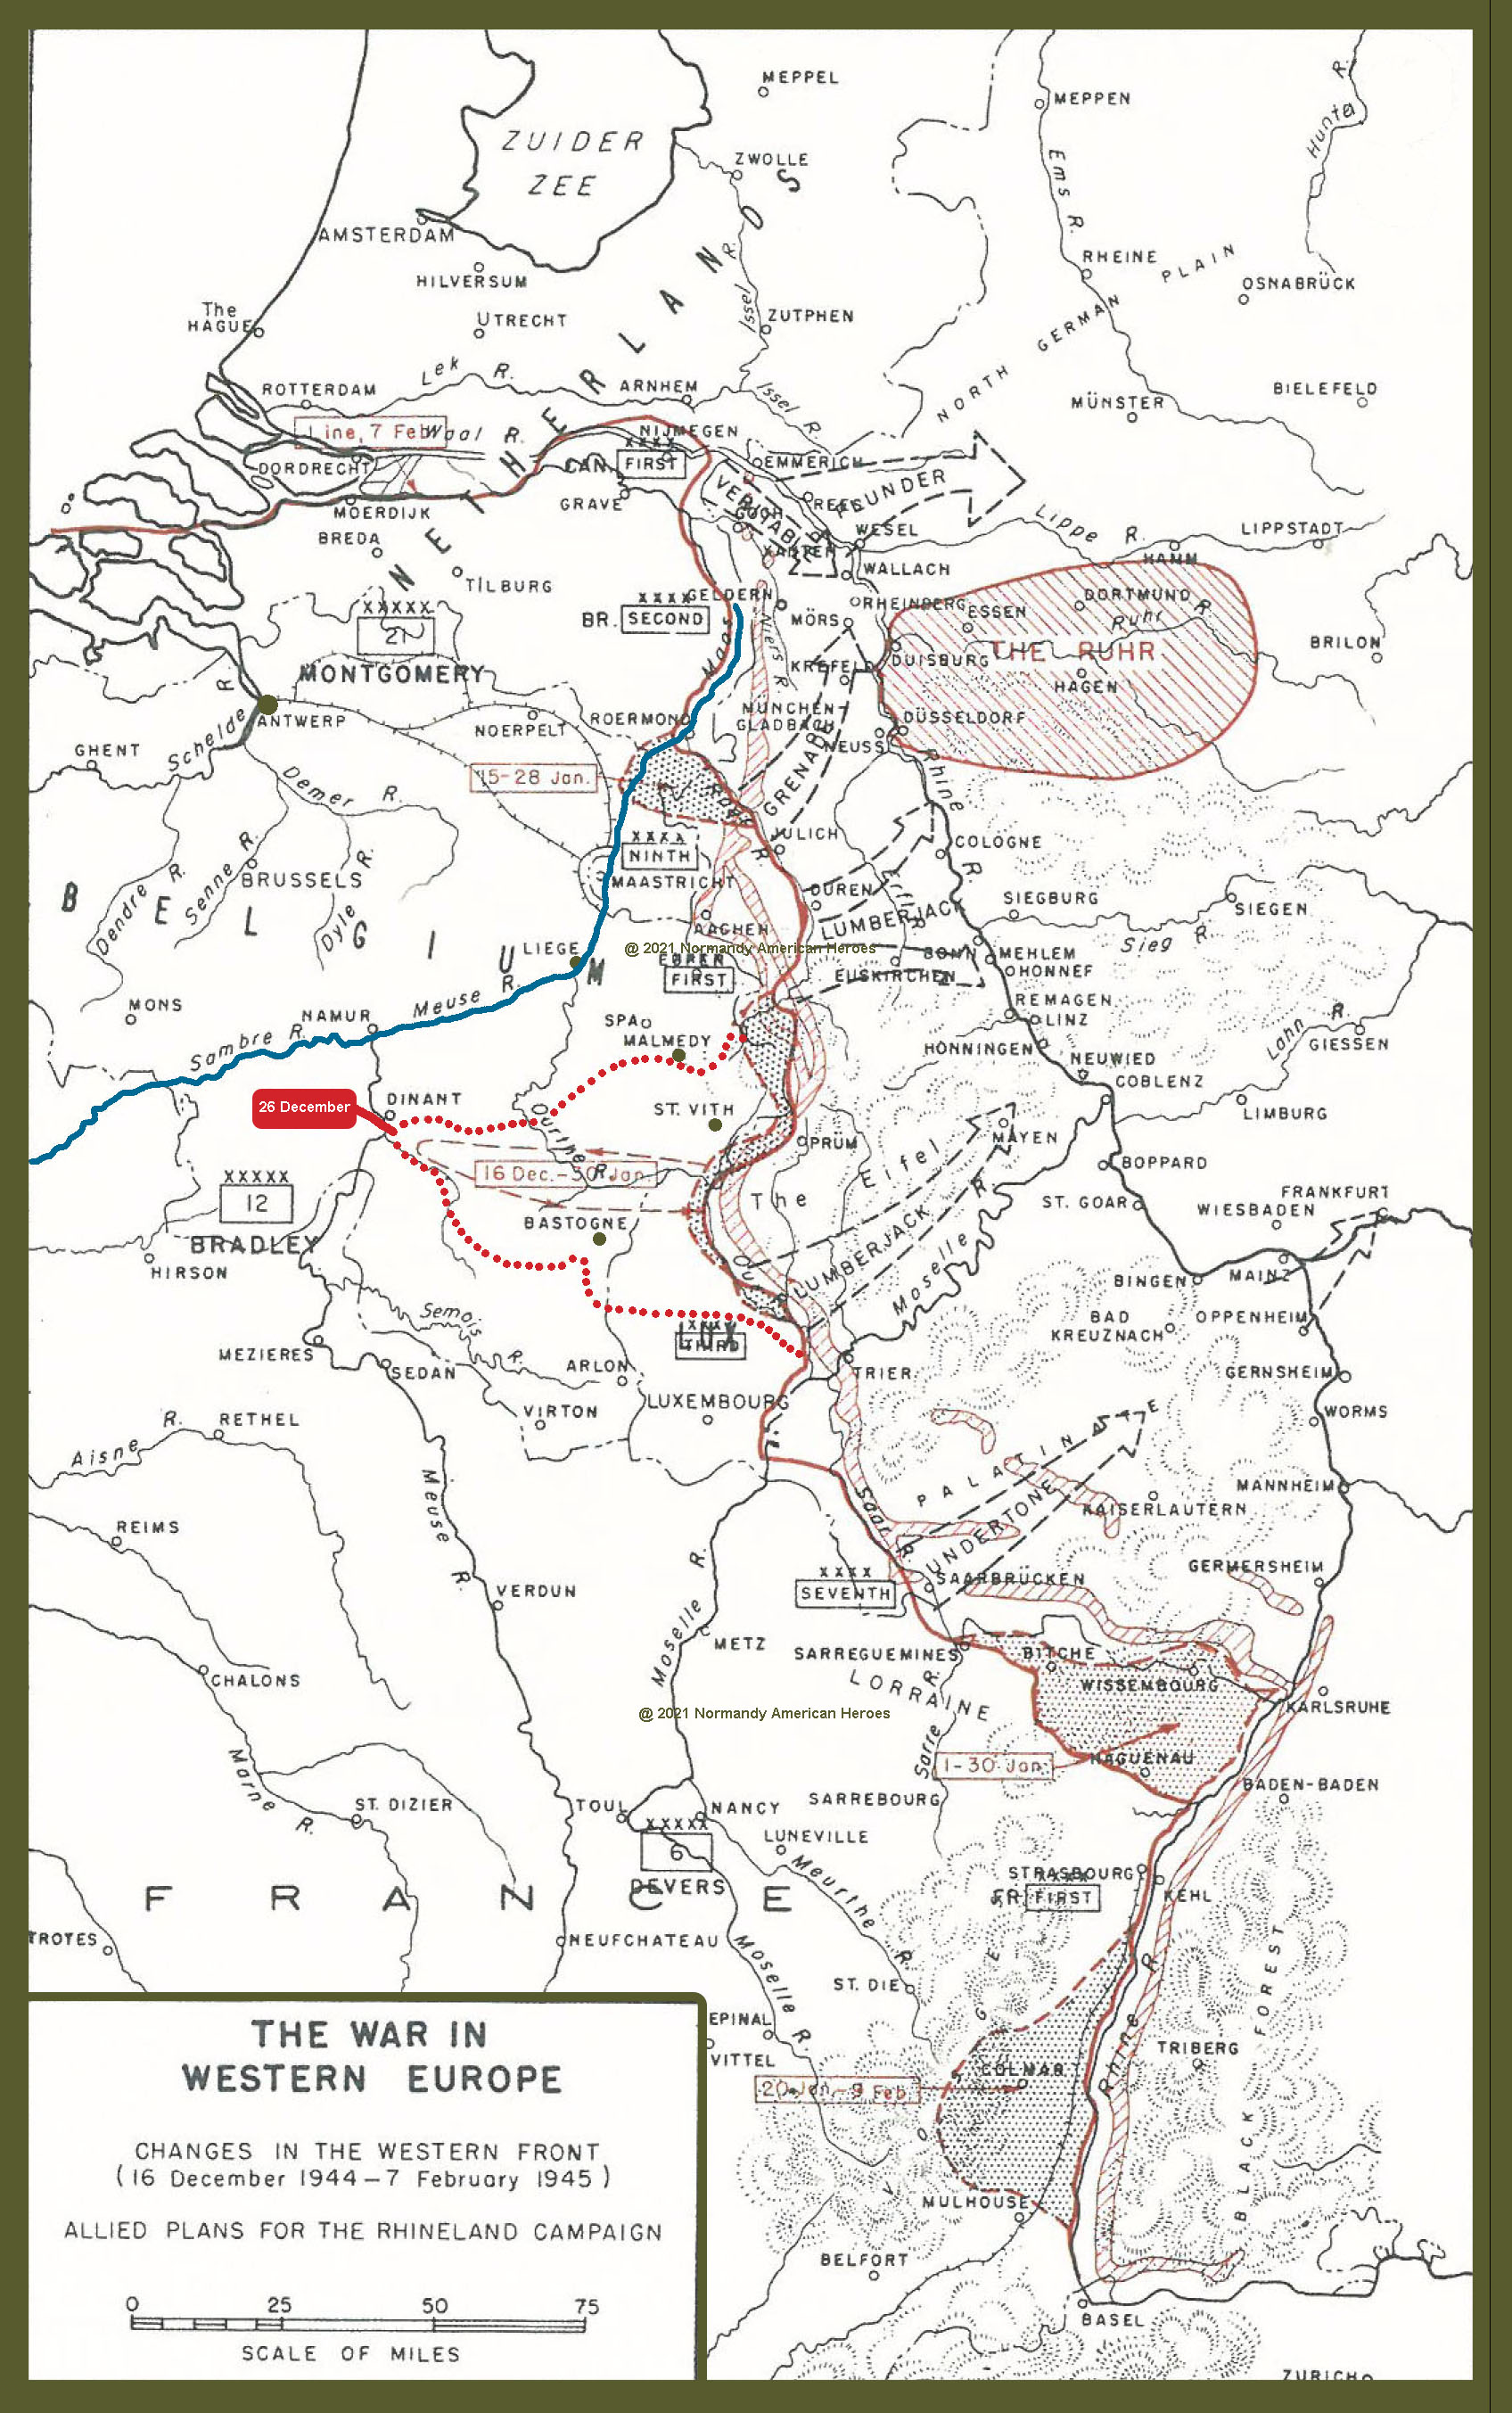 16 December 1944 ot 7 February 1945 Allied plans for the Rhineland campaign